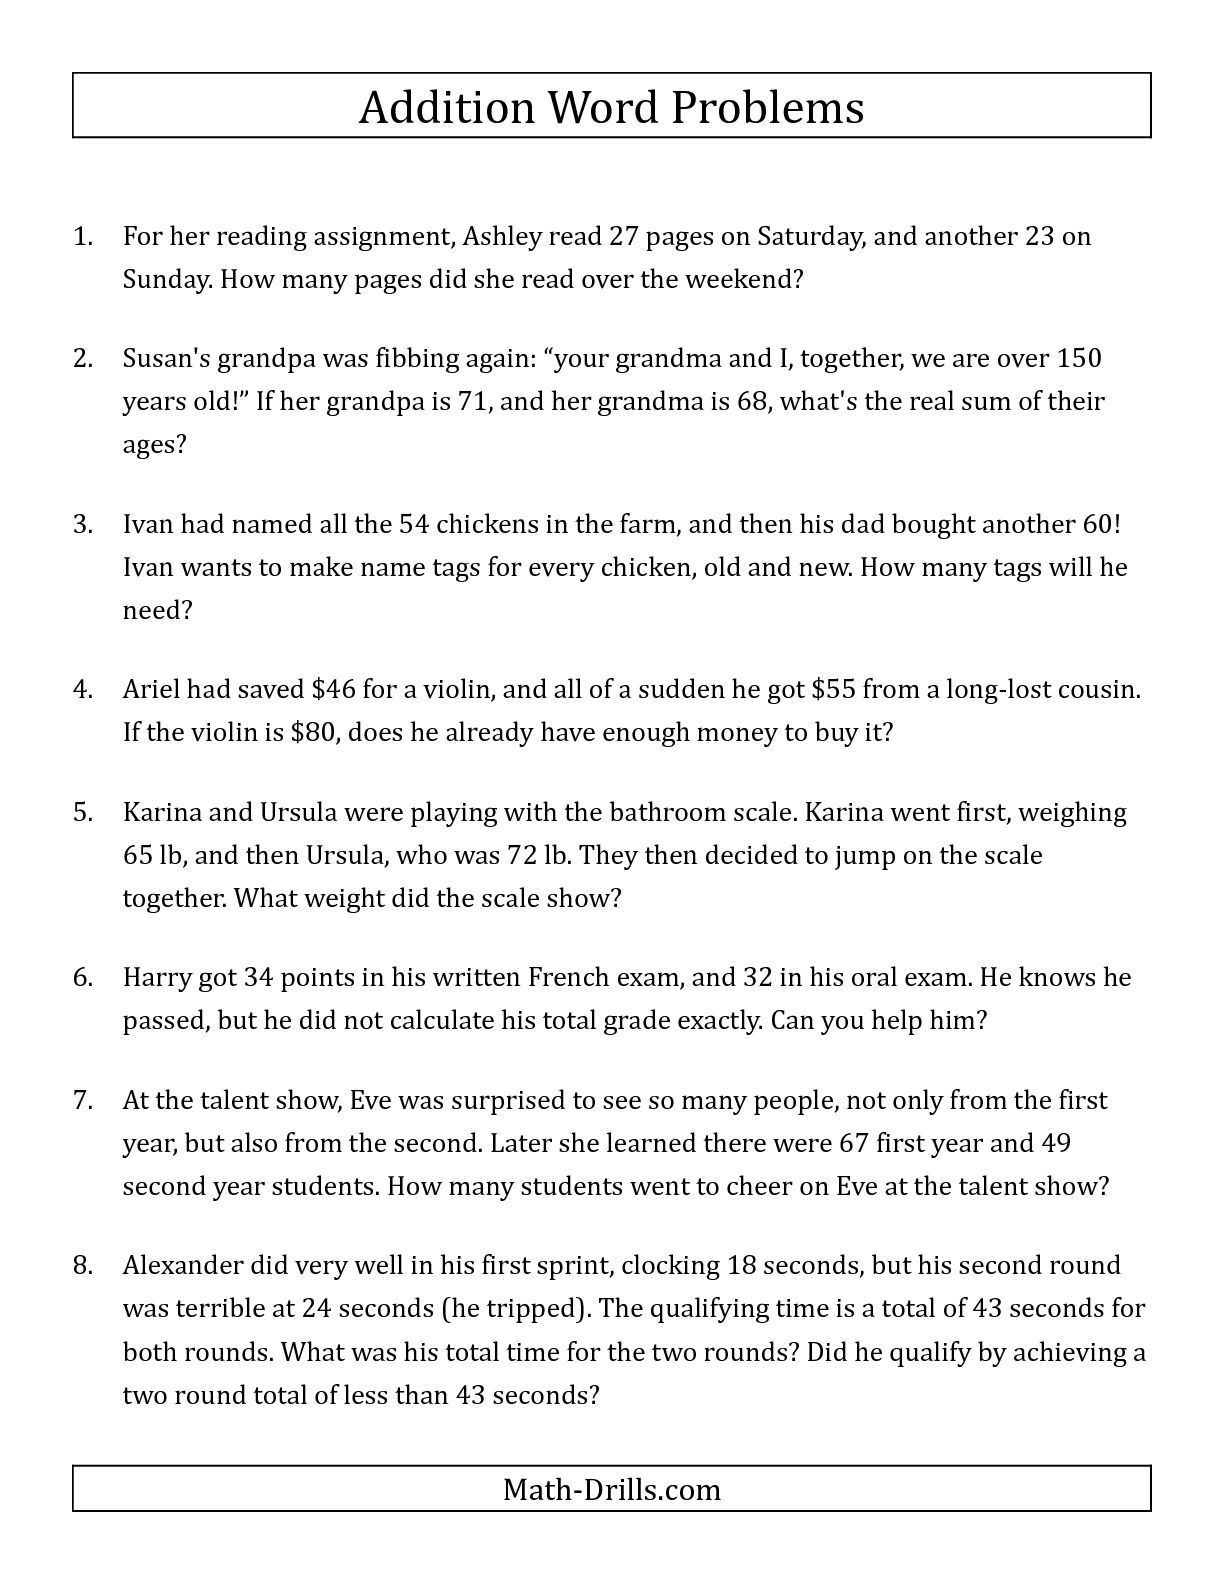 worksheet Double Digit Subtraction Word Problems the single step addition word problems using two digit numbers a word